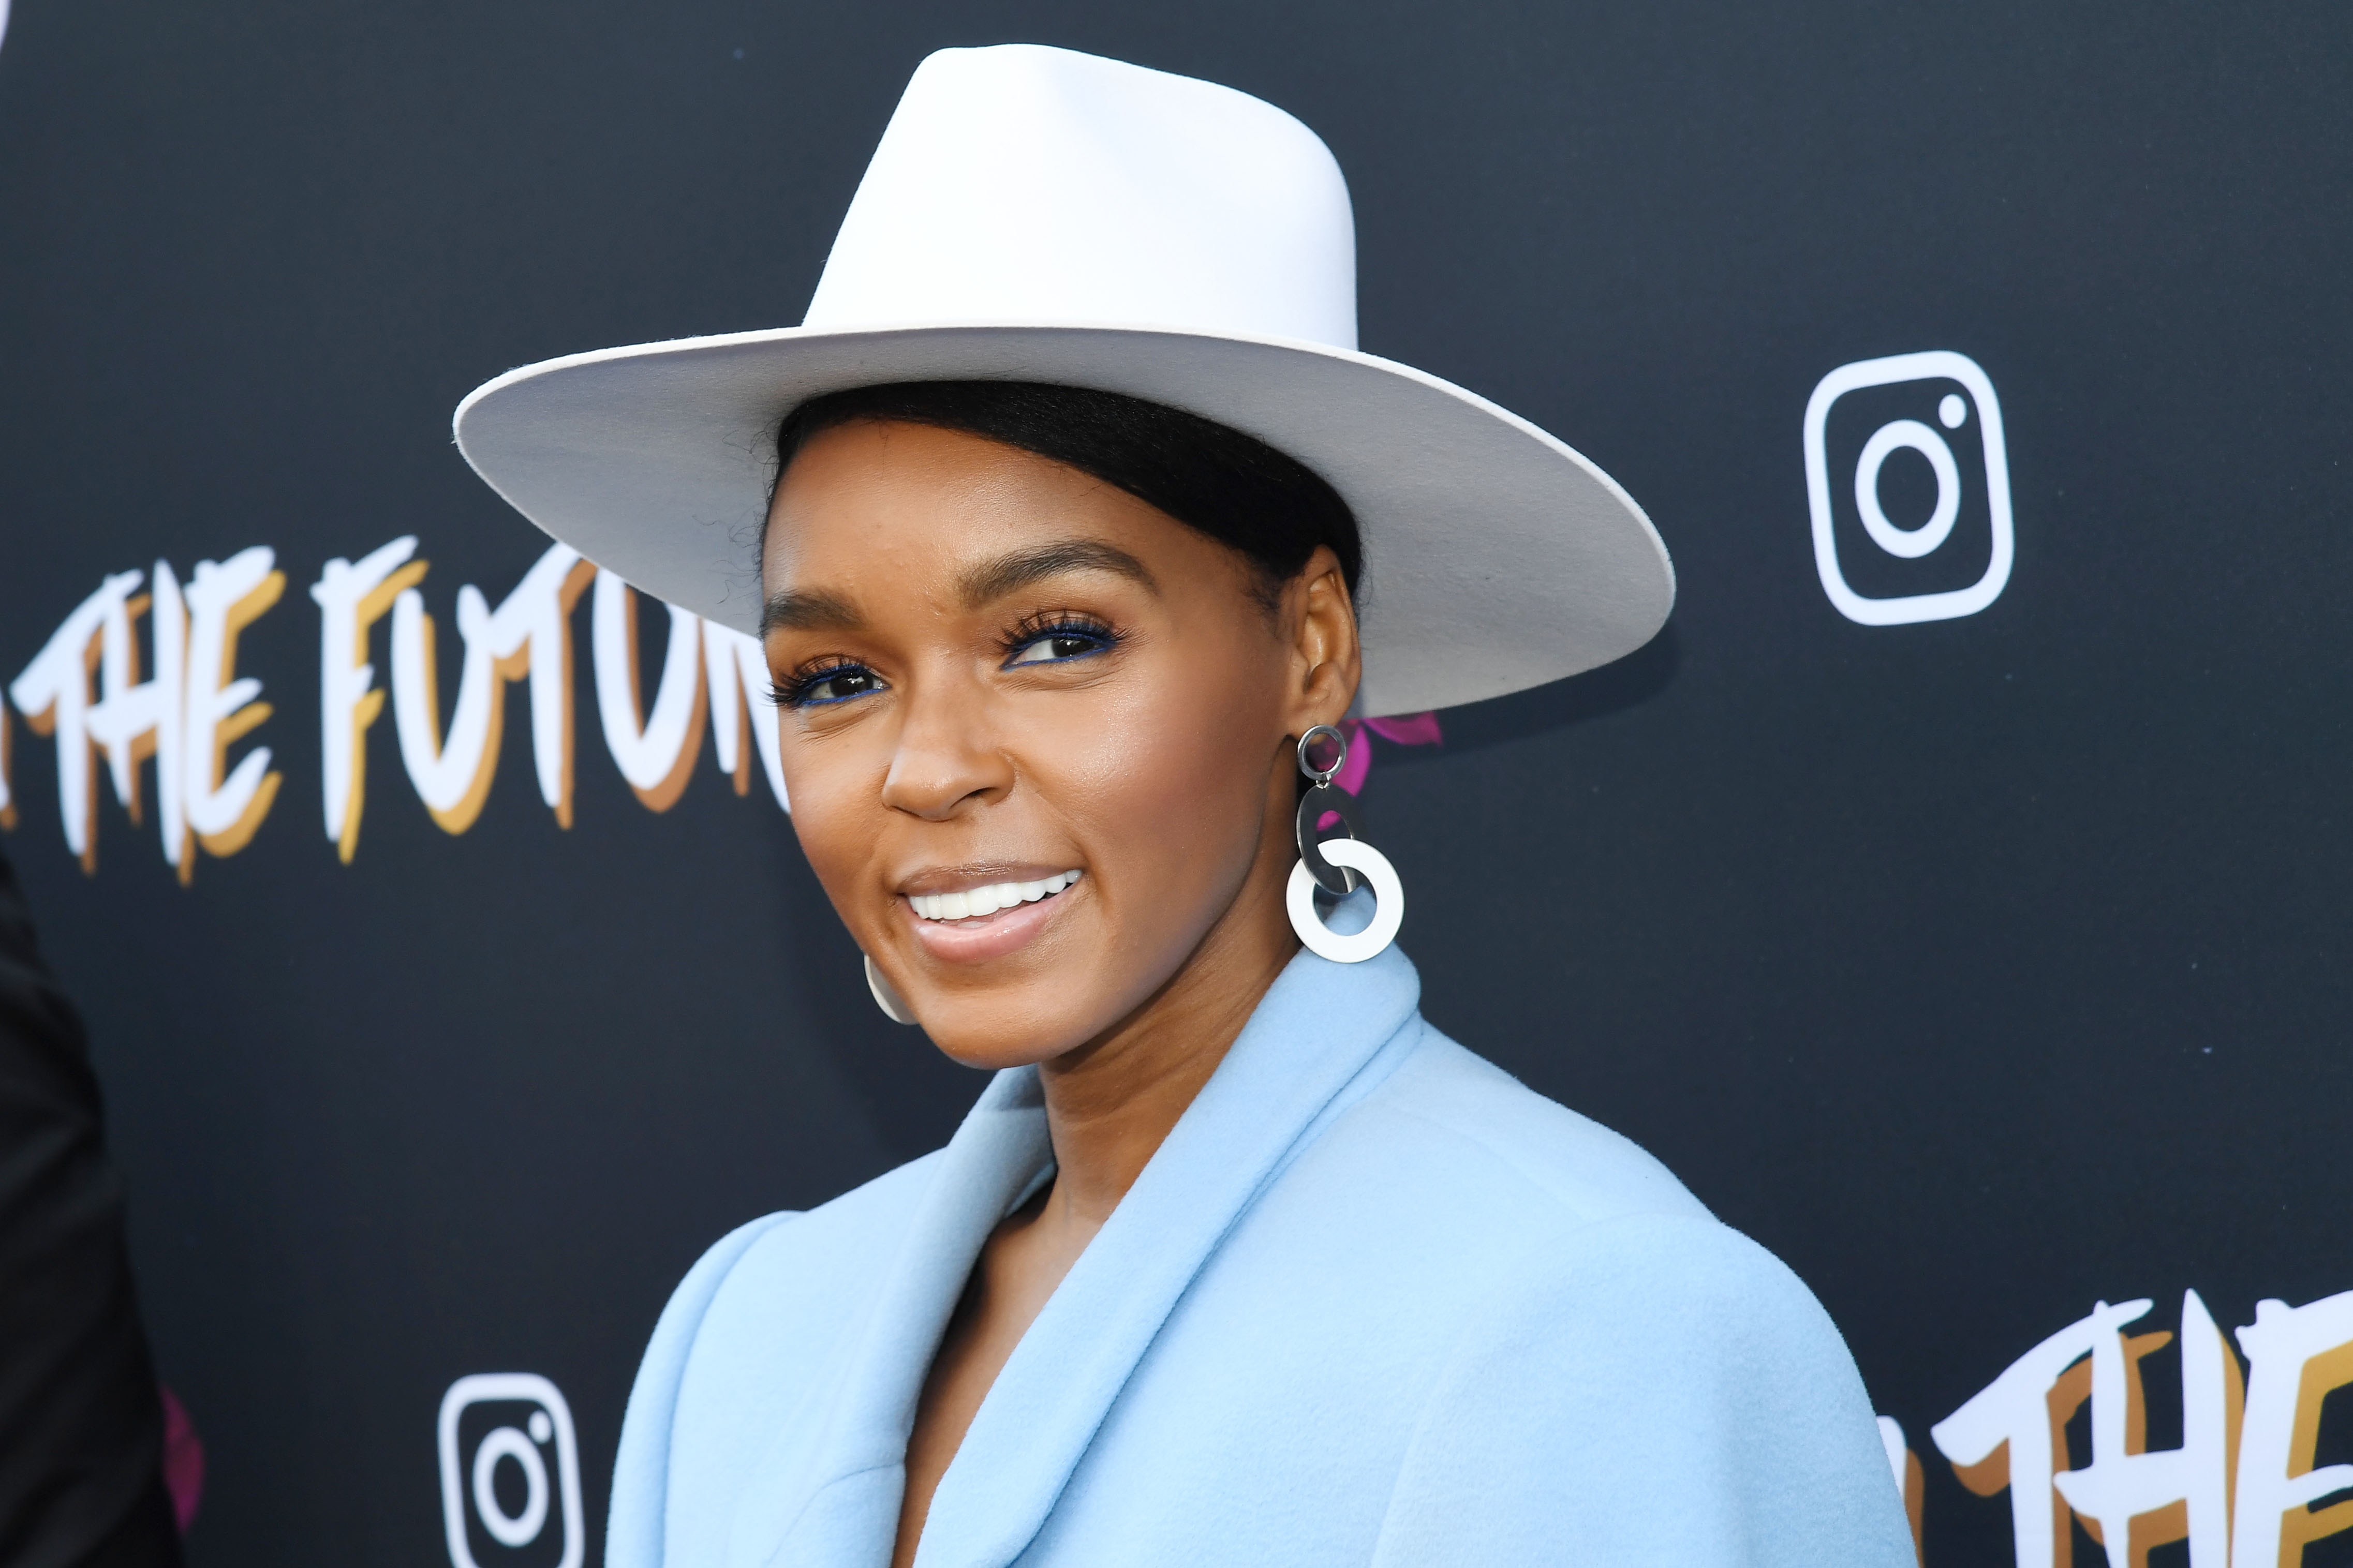 Janelle Monáe attends Janelle Monáe x Instagram Fem The Future Brunch on February 08, 2019 in Los Angeles, California